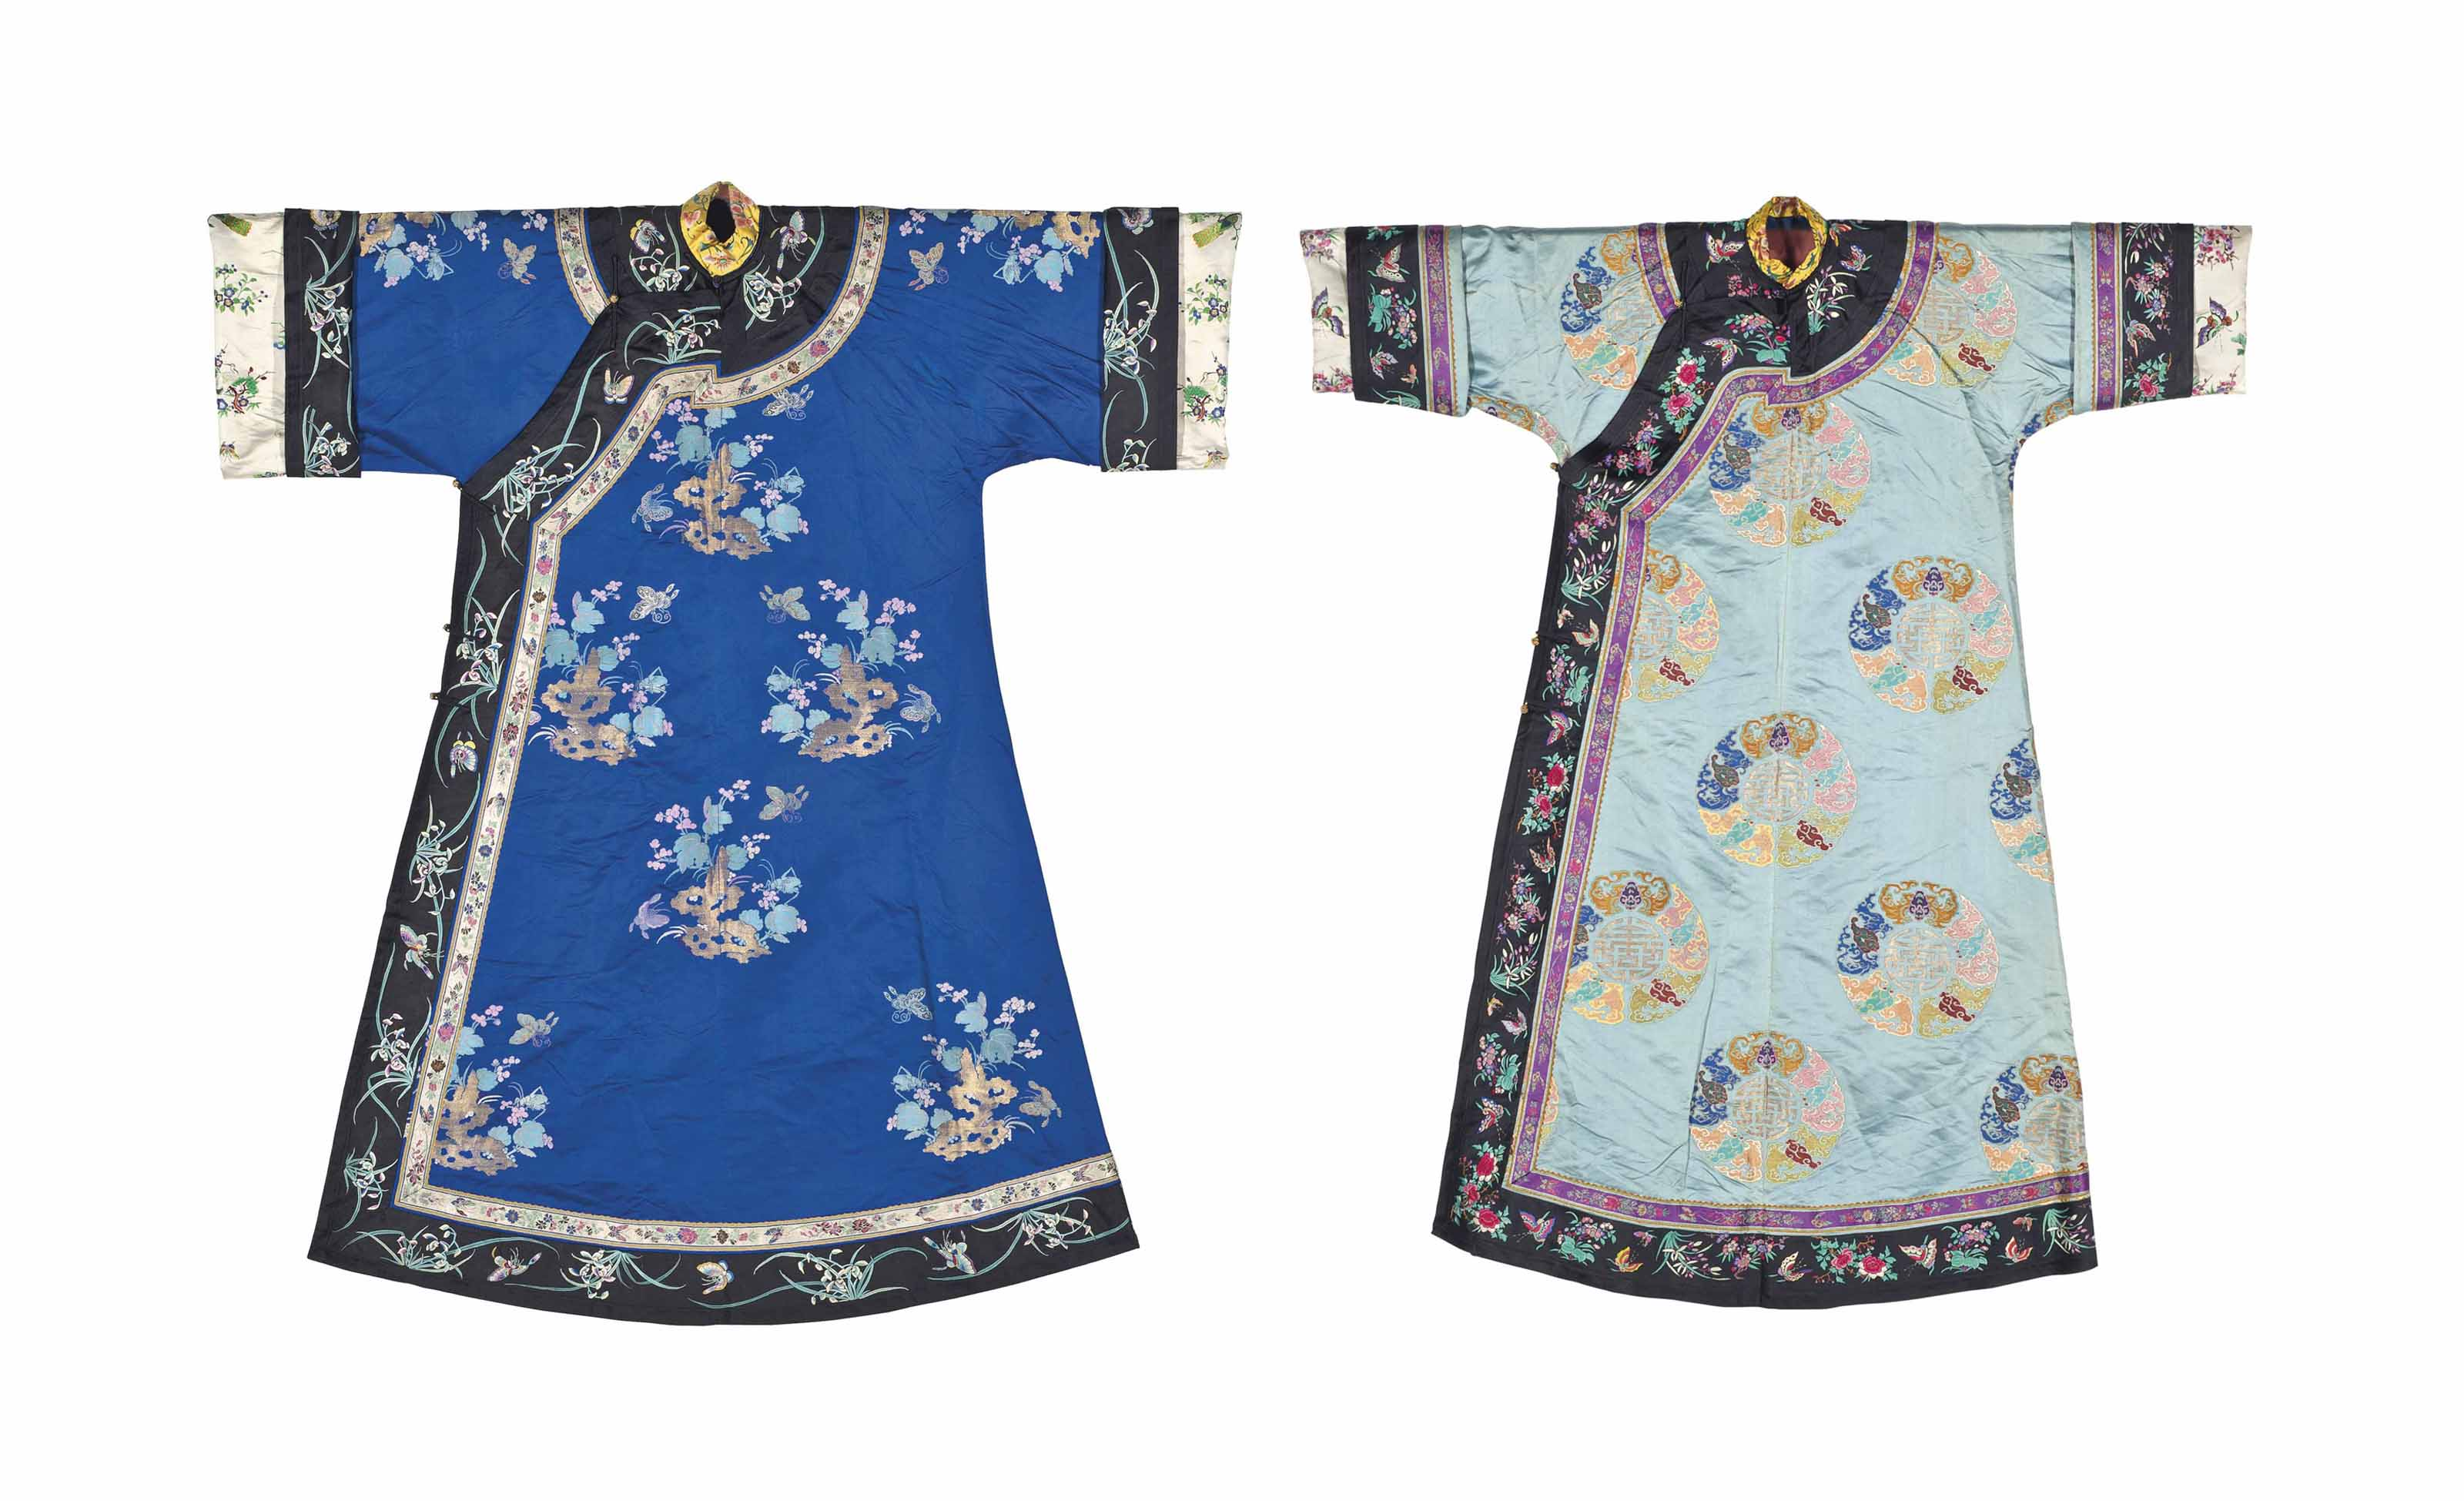 TWO BROCADE INFORMAL ROBES FOR